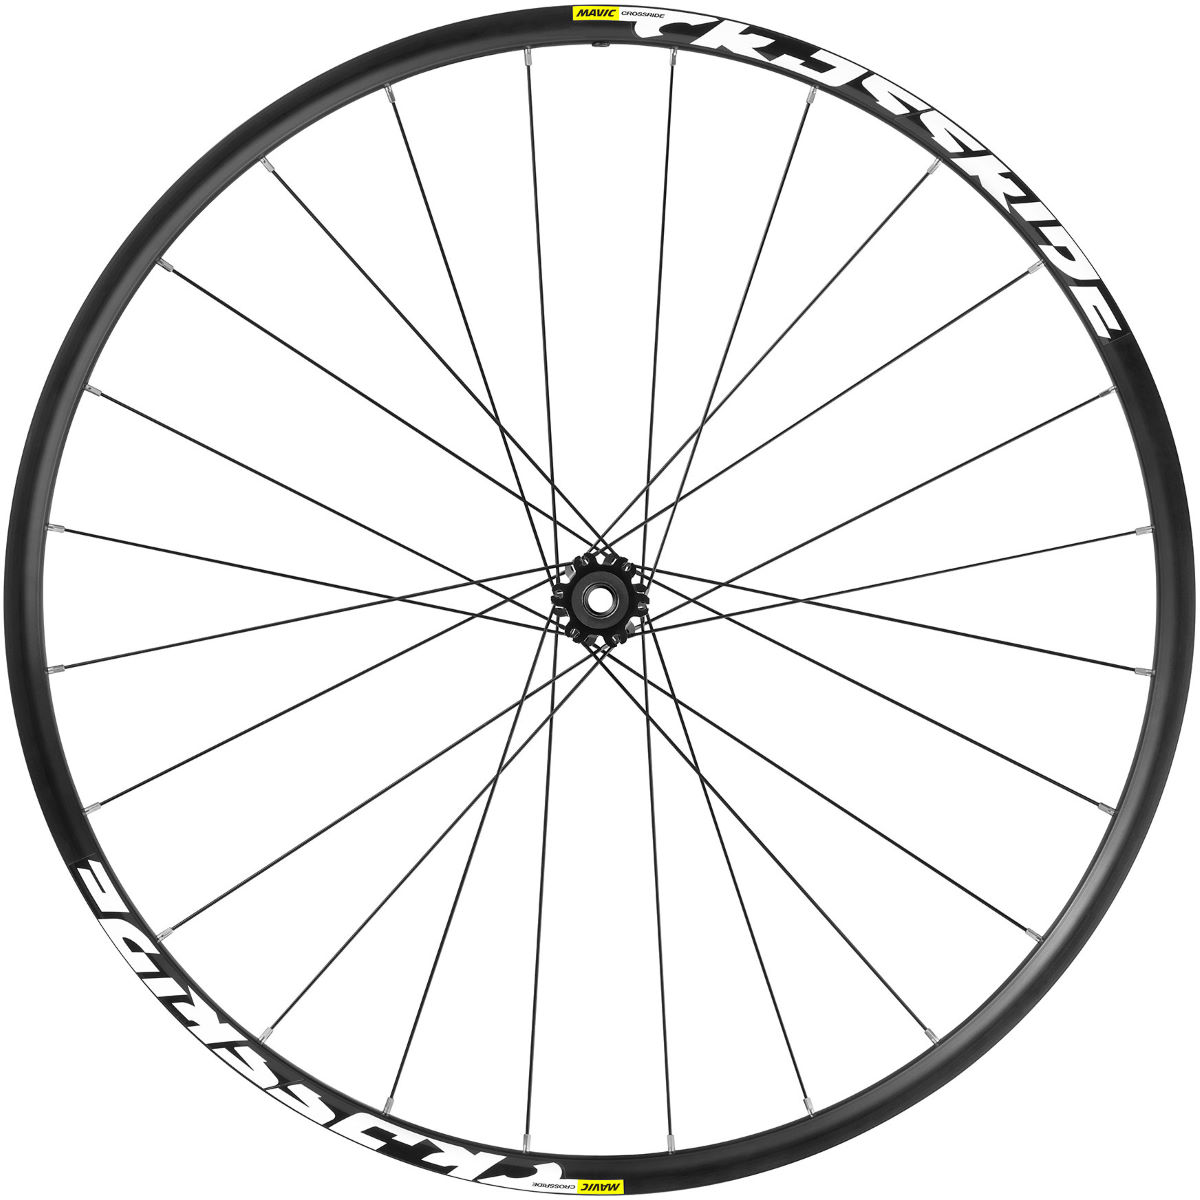 Mavic Crossride 16 Front Wheel - Front wheels